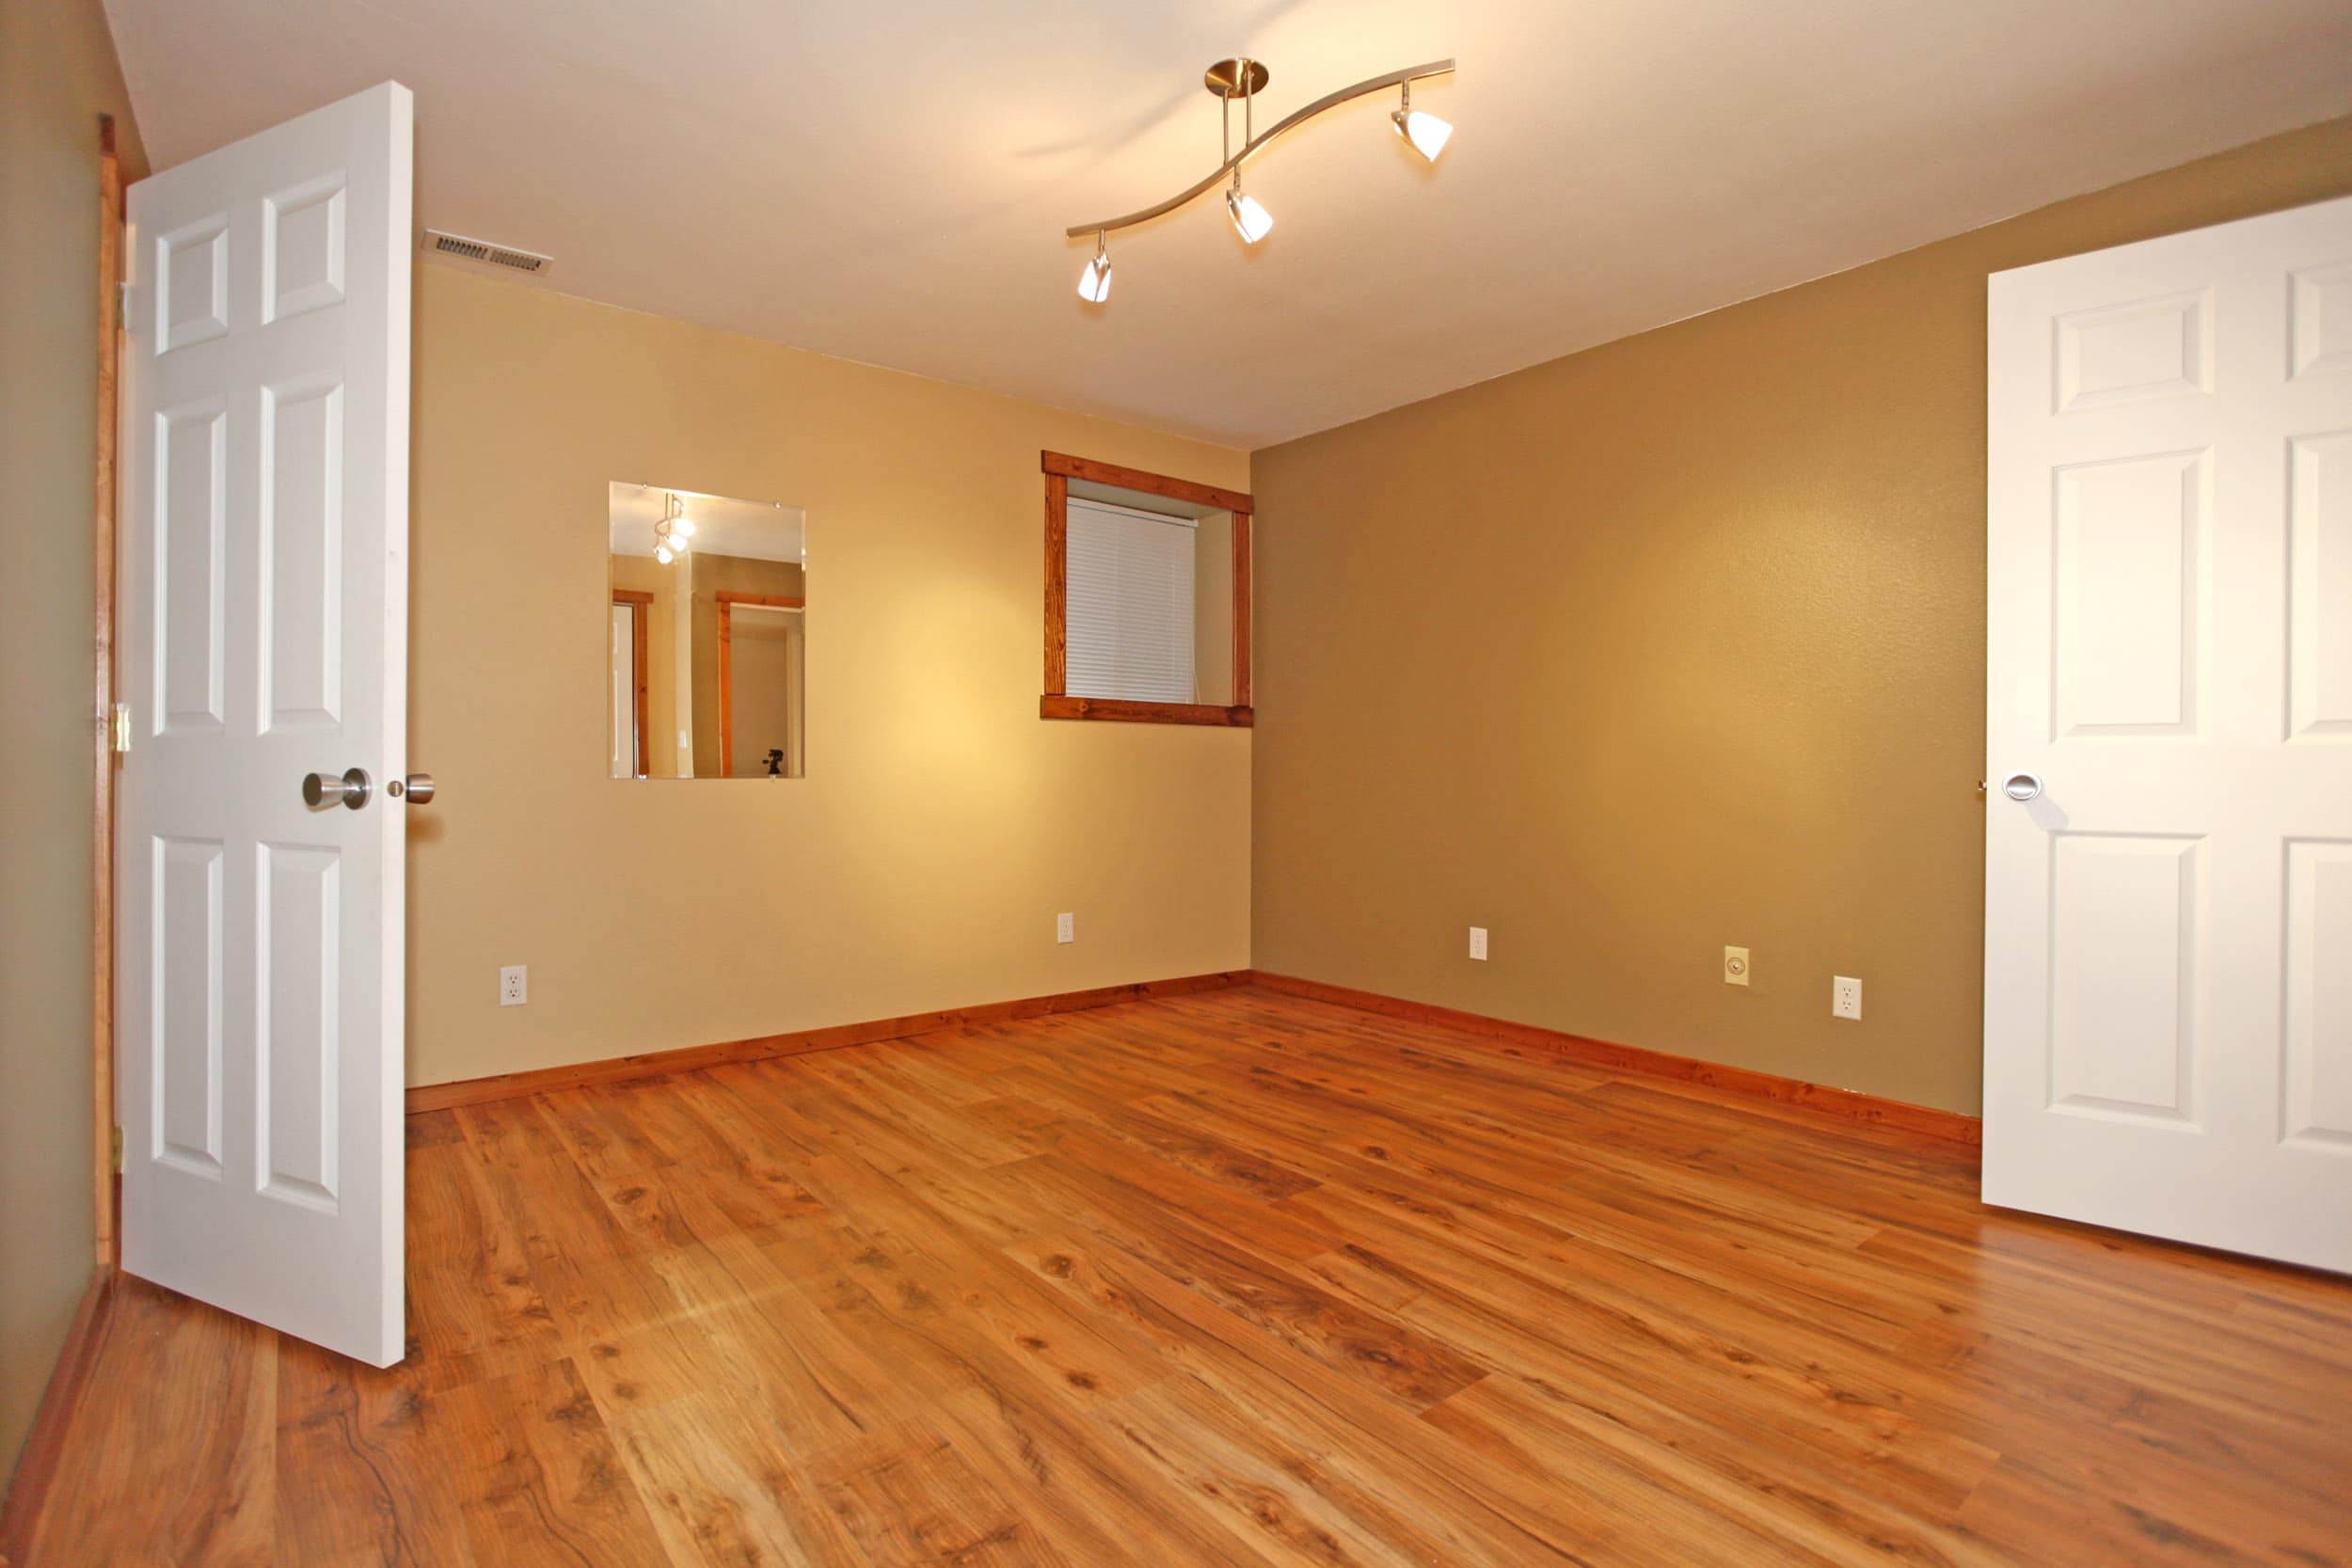 10 Top Tips for the Perfectly Refinished Hardwood Floors (Part II)